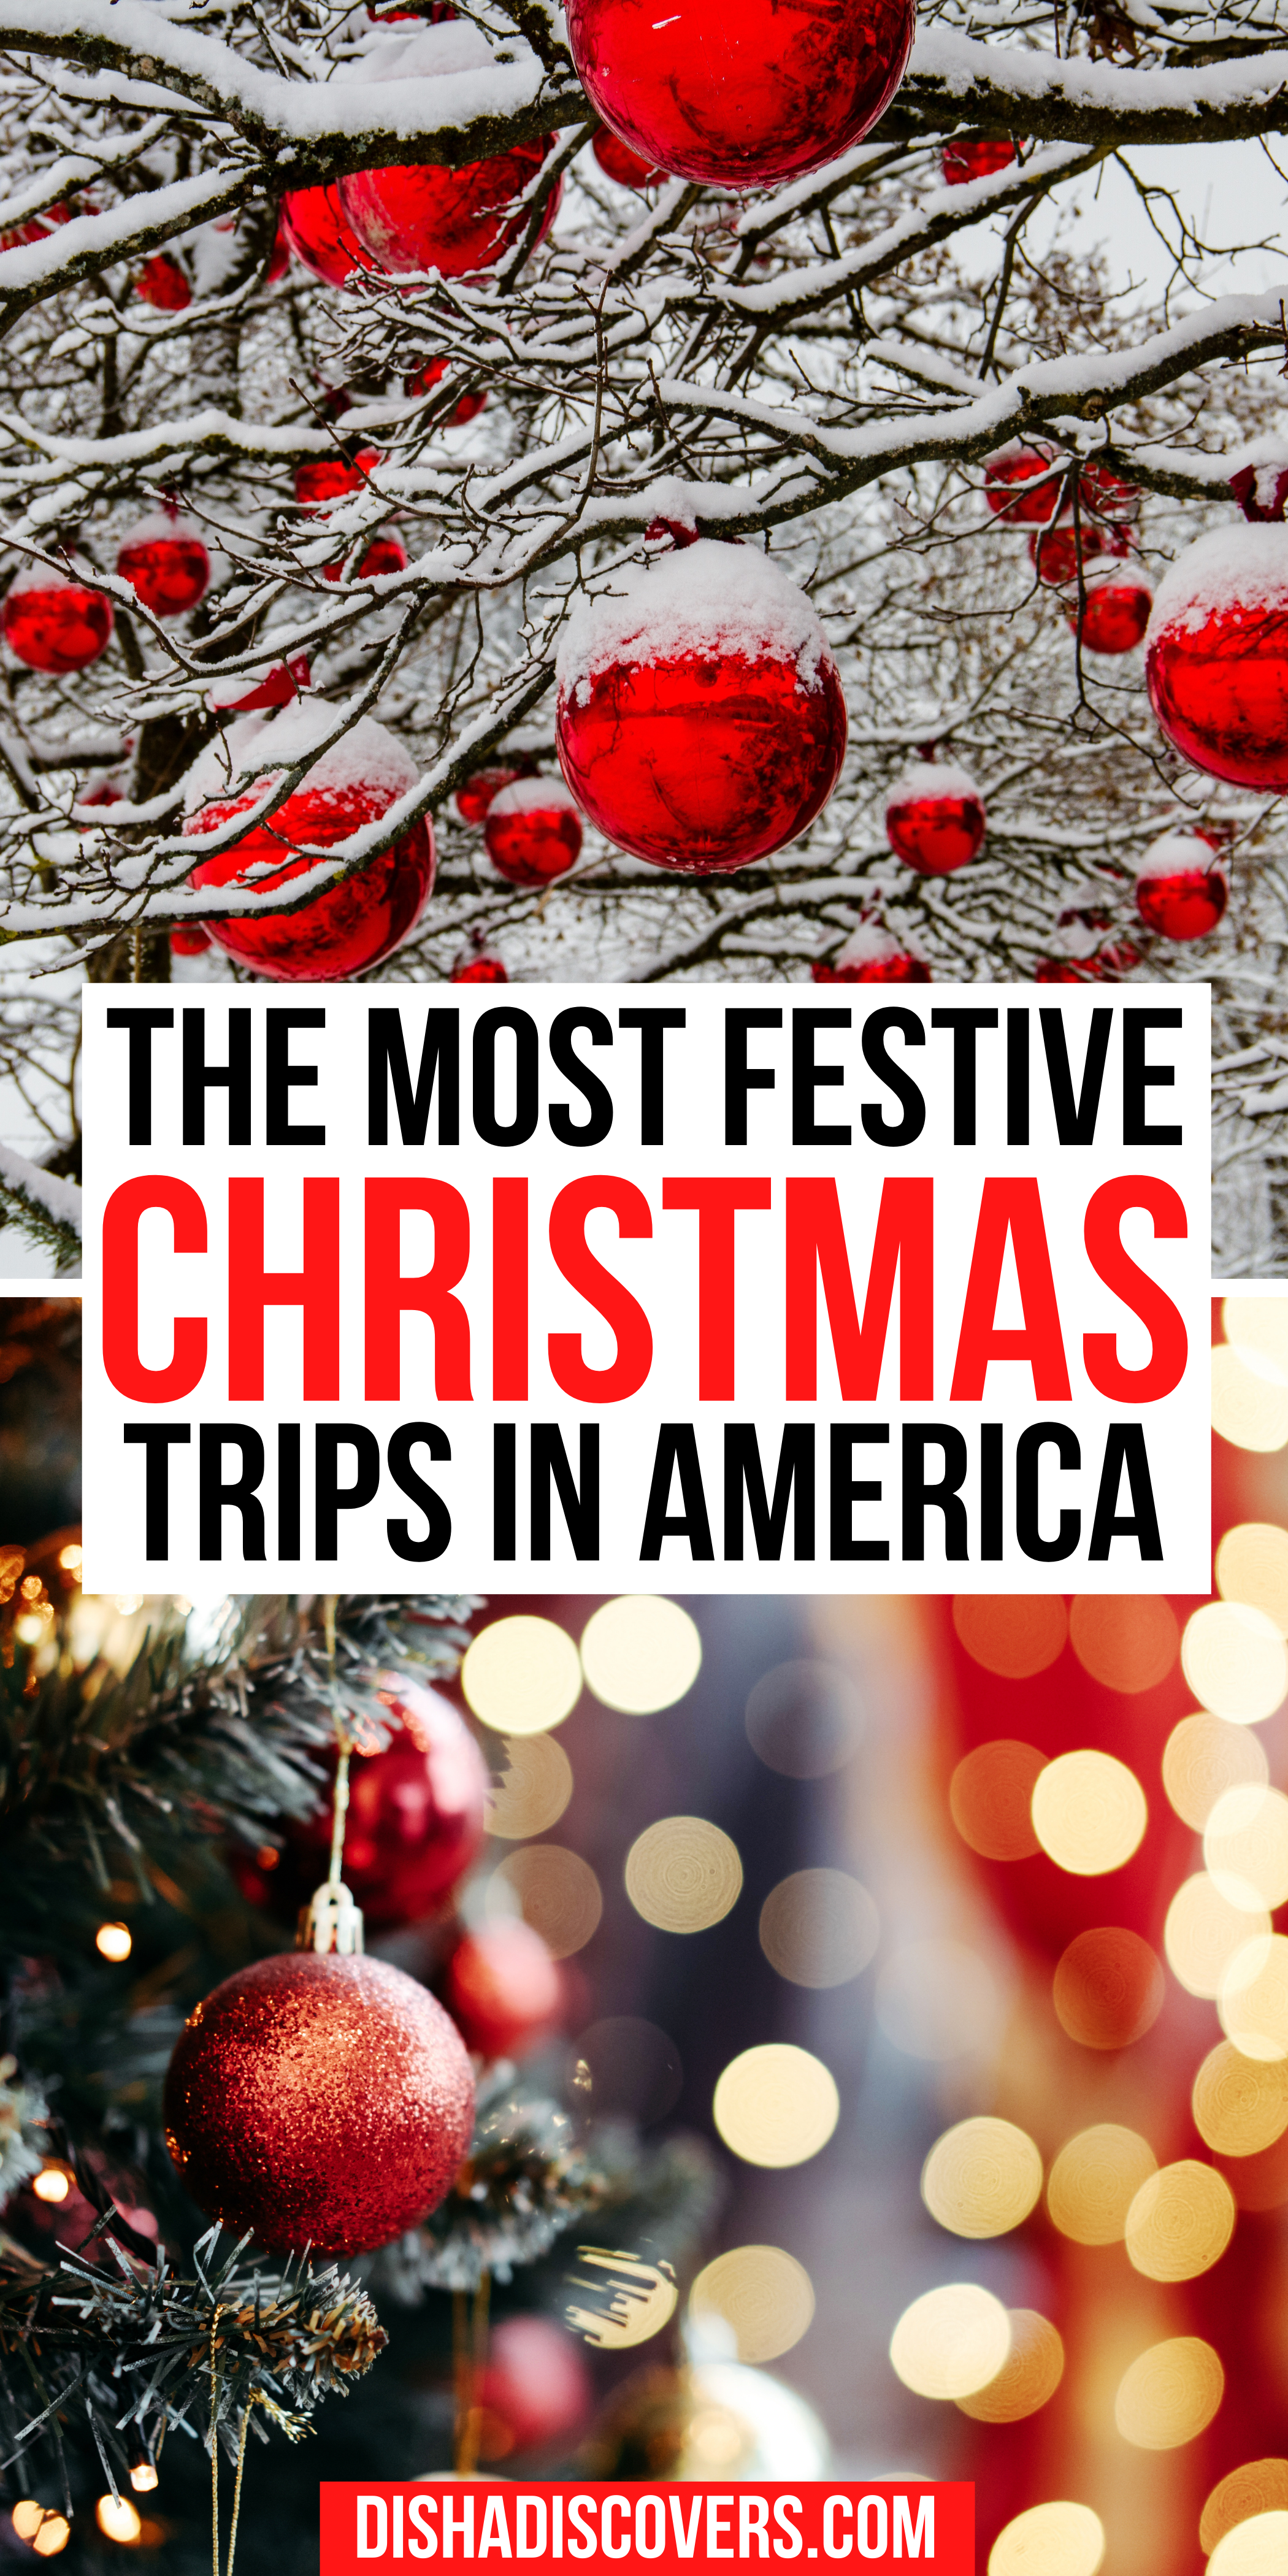 Most Popular Us Destination For Christmas 2020 USA Christmas Destinations: 11 of the Best Holiday Getaways in